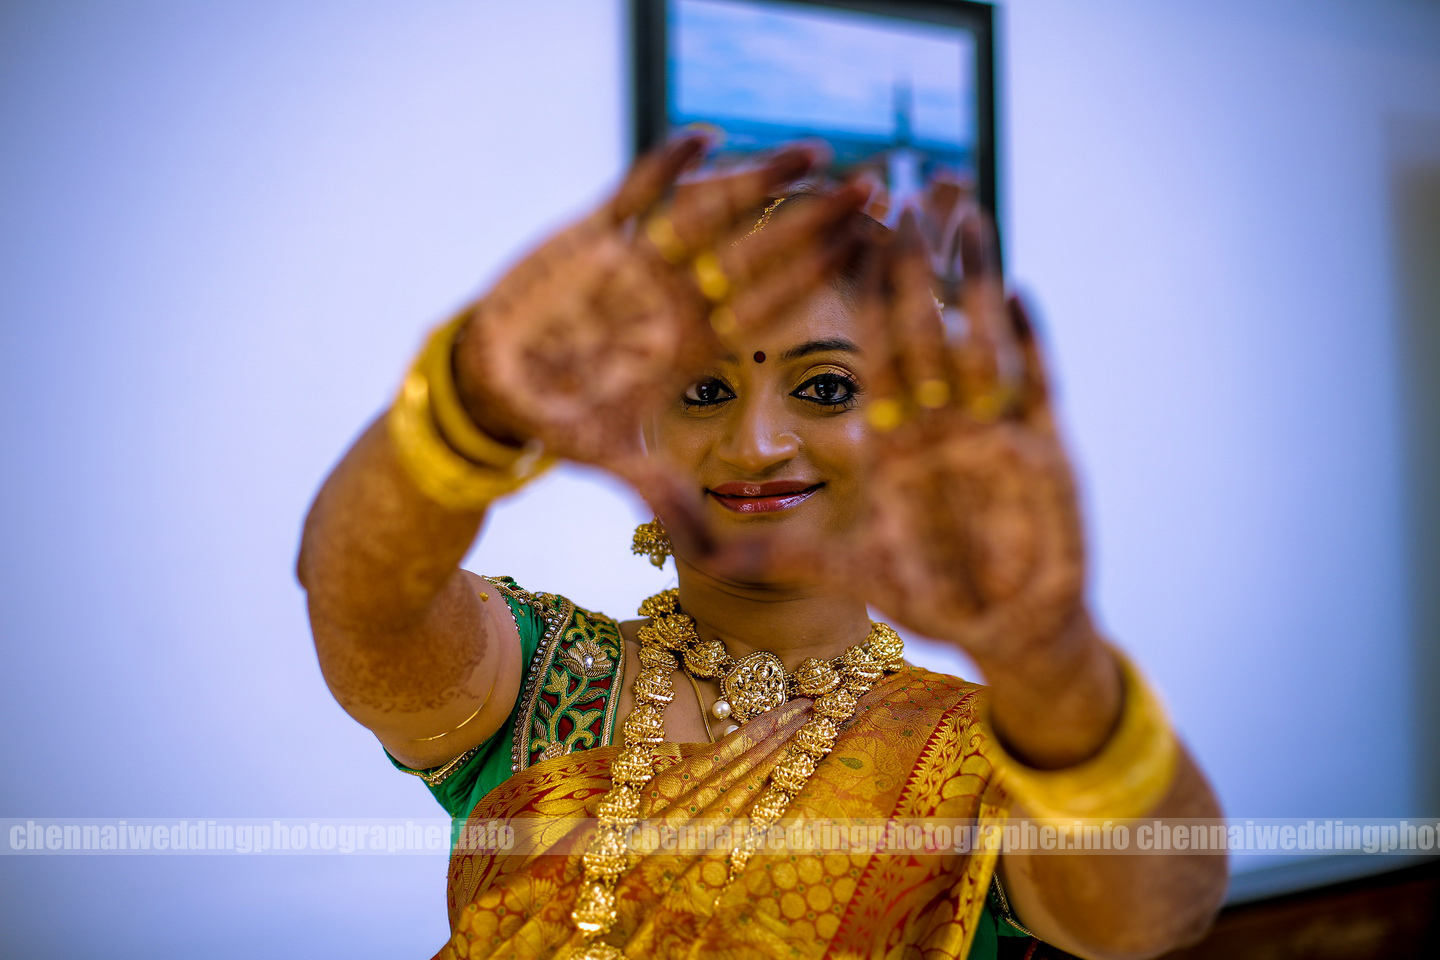 chennai tamil wedding photography